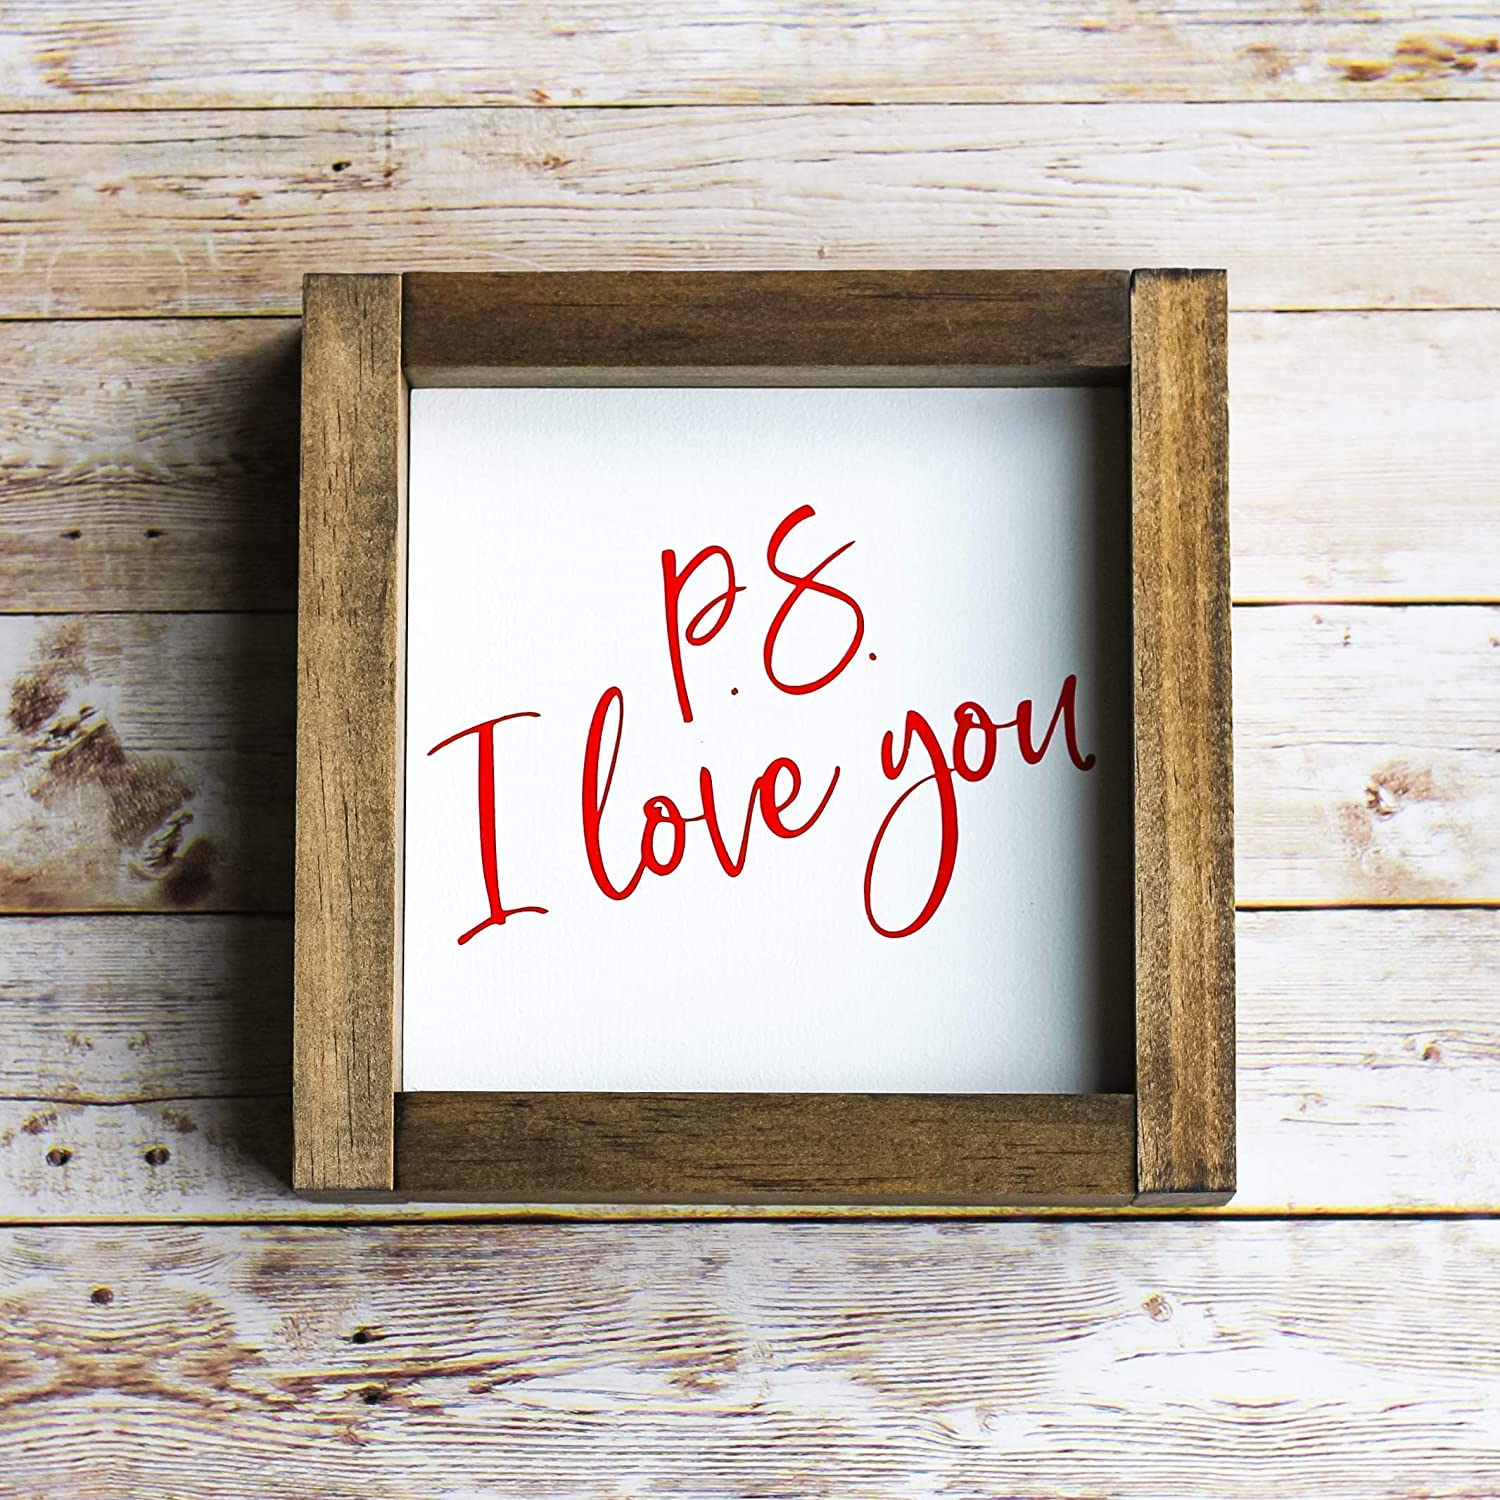 Valentines Day Gift Home Decor PS I Love You Wall Sign 7 x 7 inch